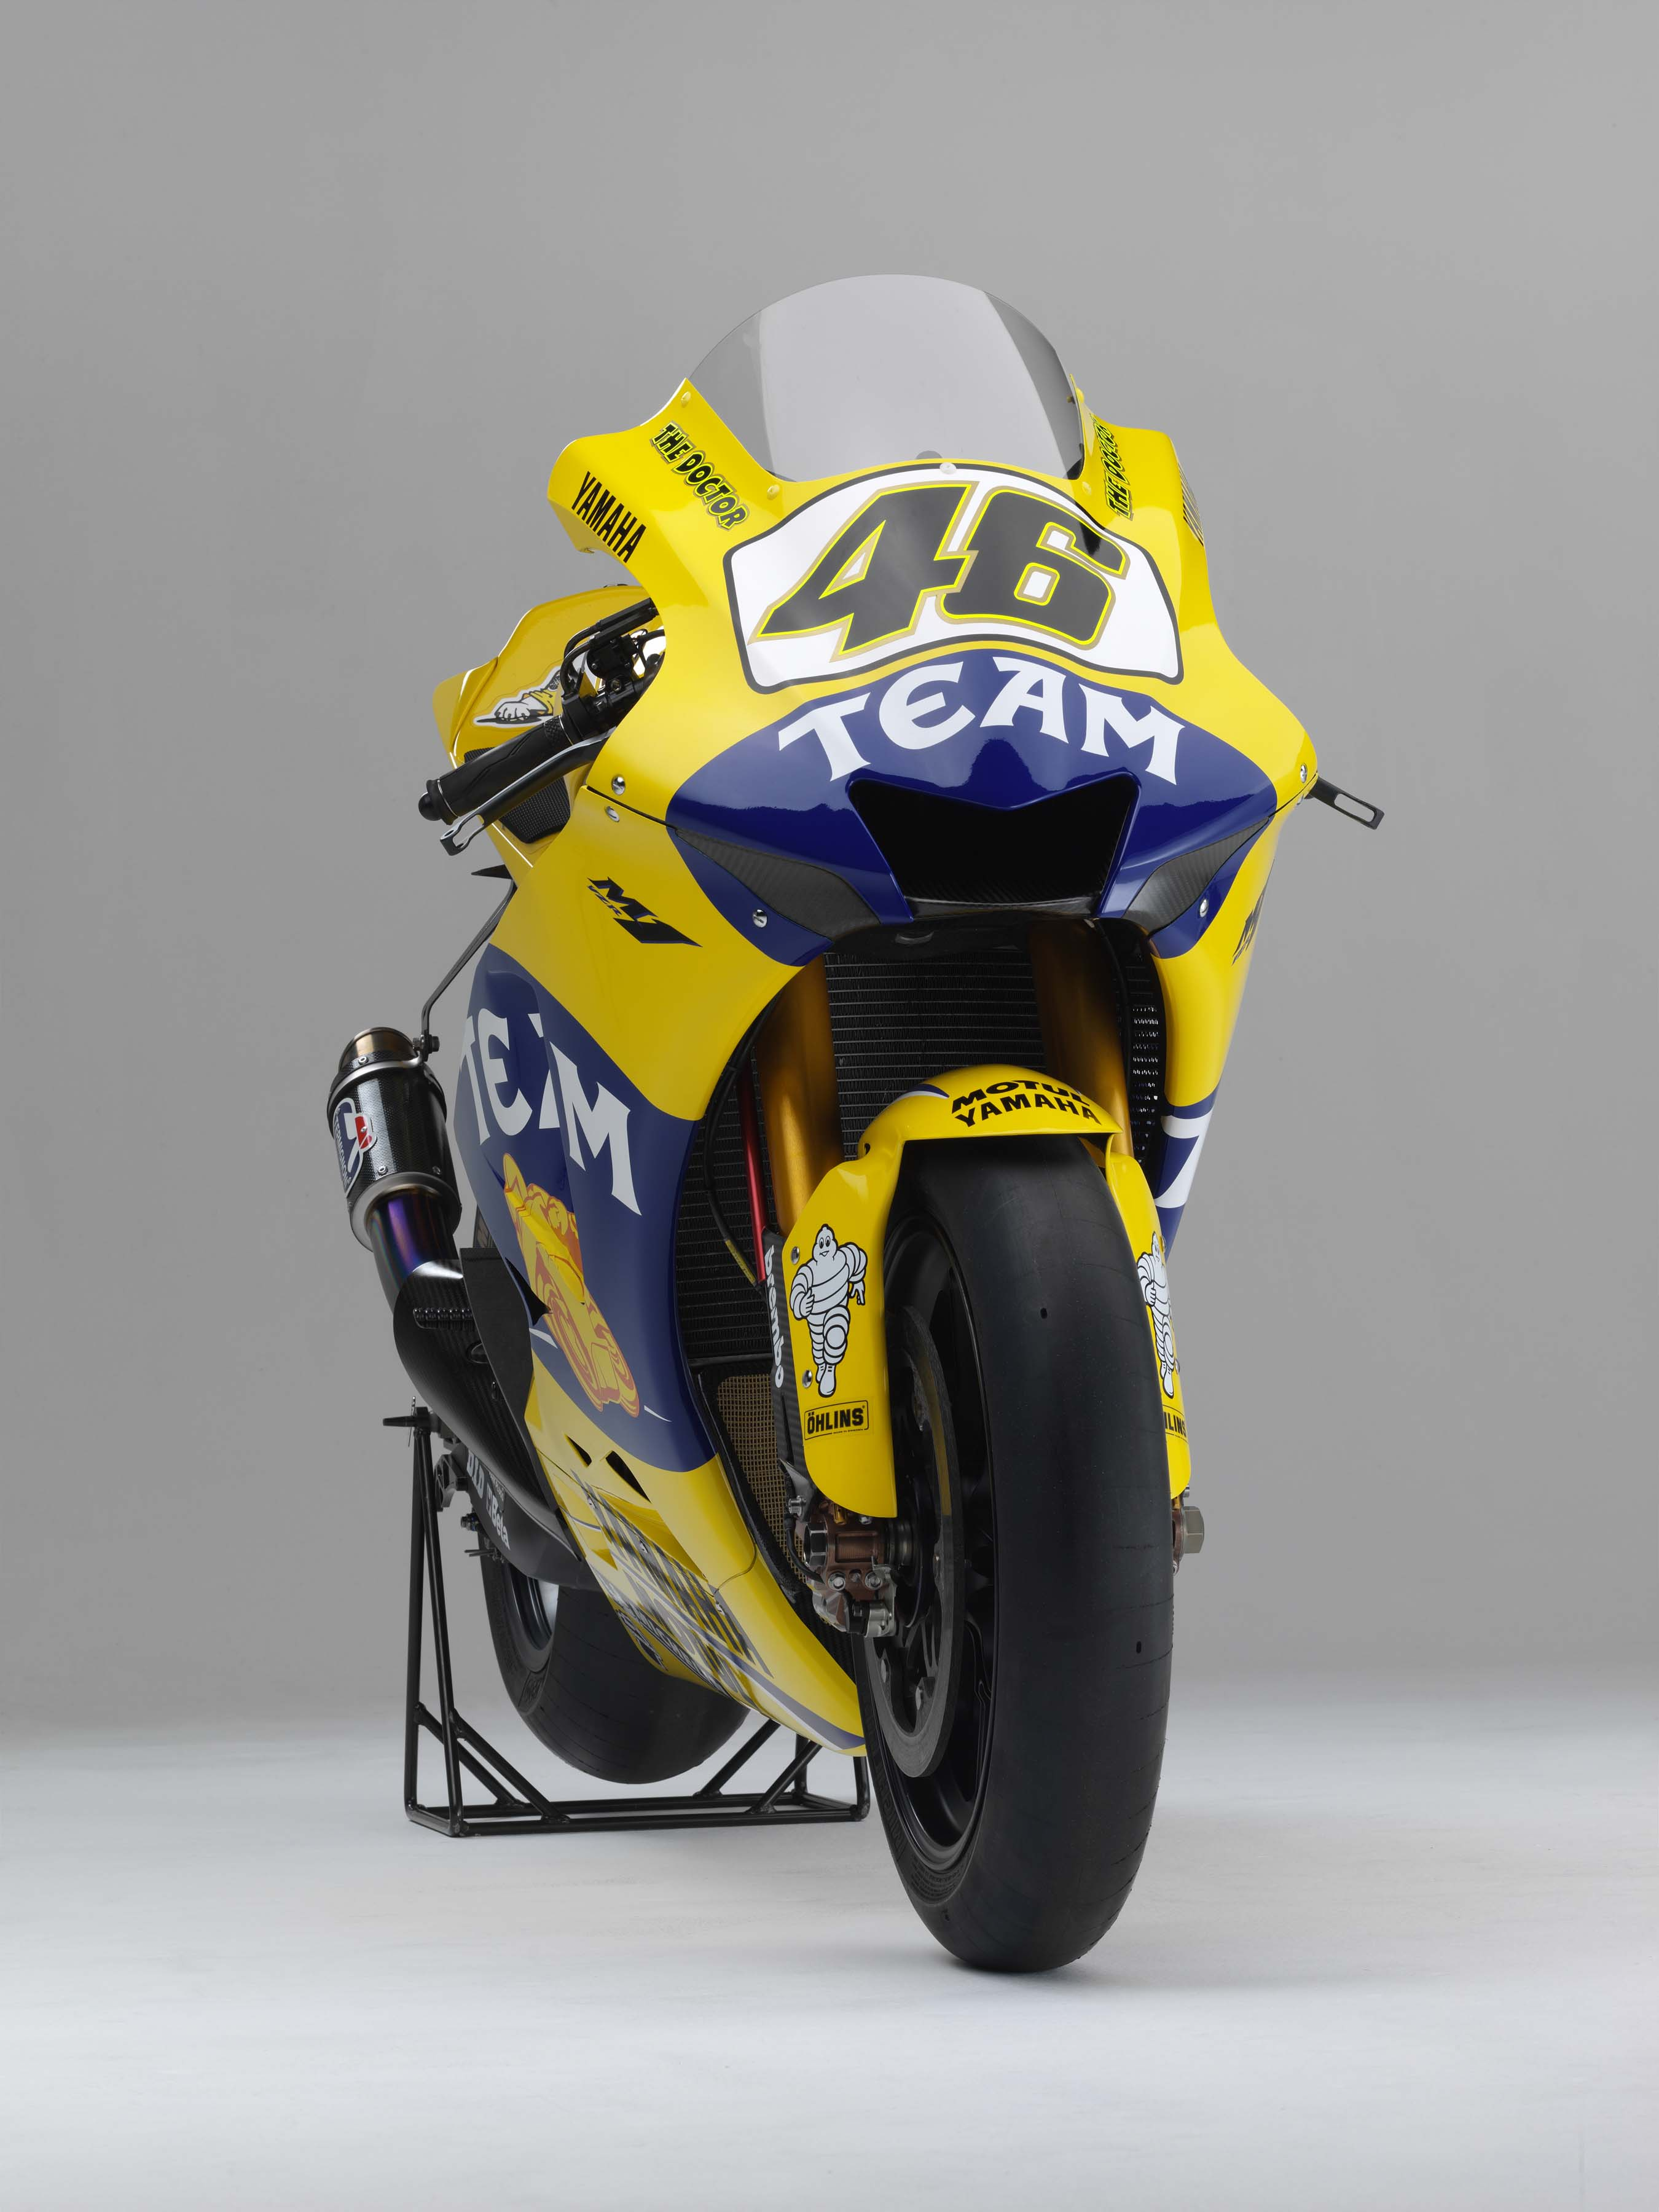 xxx valentino rossi 39 s 2006 yamaha yzr m1 asphalt rubber. Black Bedroom Furniture Sets. Home Design Ideas